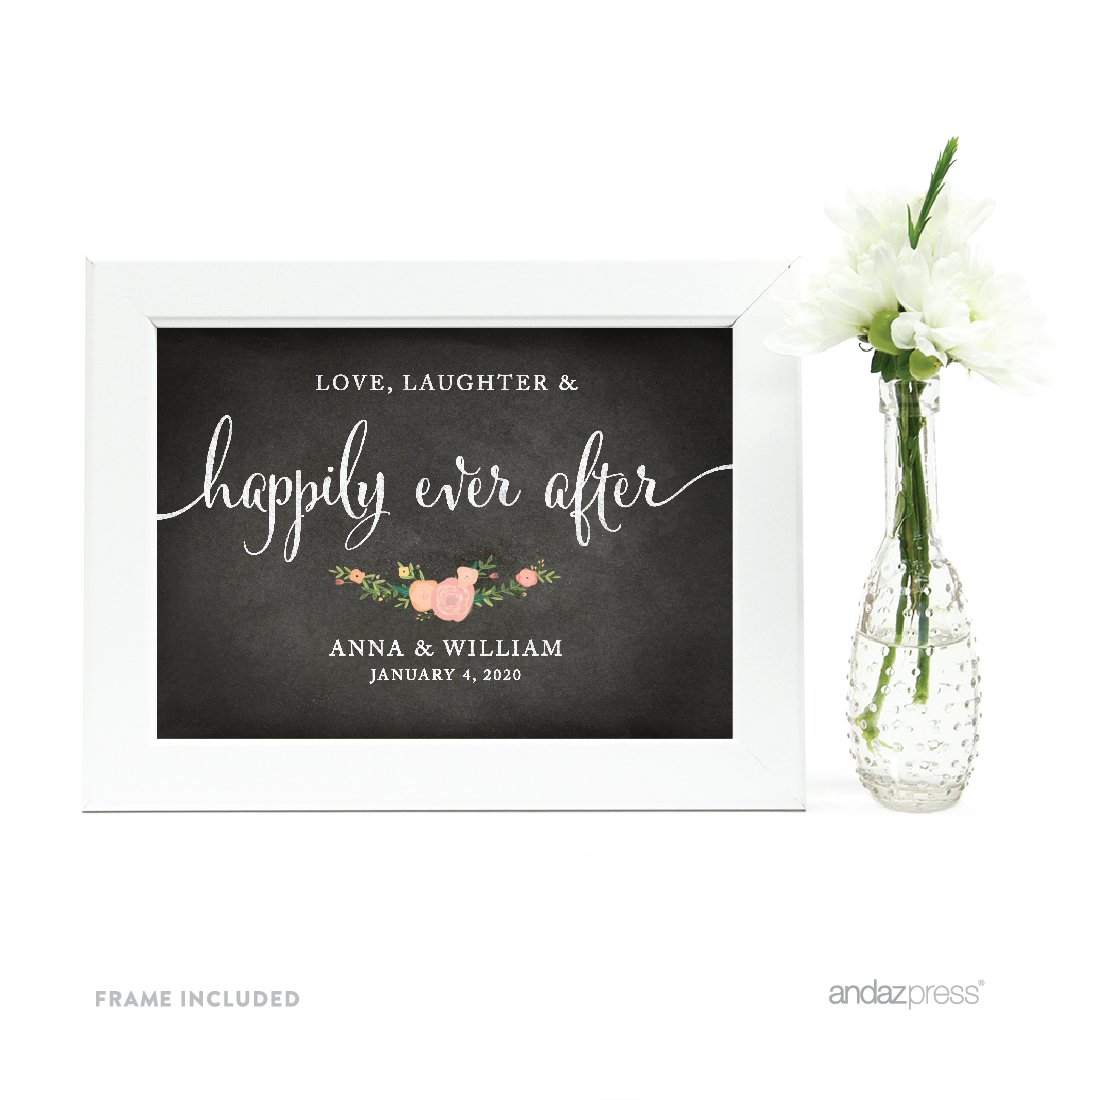 Andaz Press Personalized Wedding Framed Party Signs, Chalkboard Floral, 5x7-inch, Love, Laughter & Happily Ever After, 1-Pack, Includes Frame, Custom Made Any Name